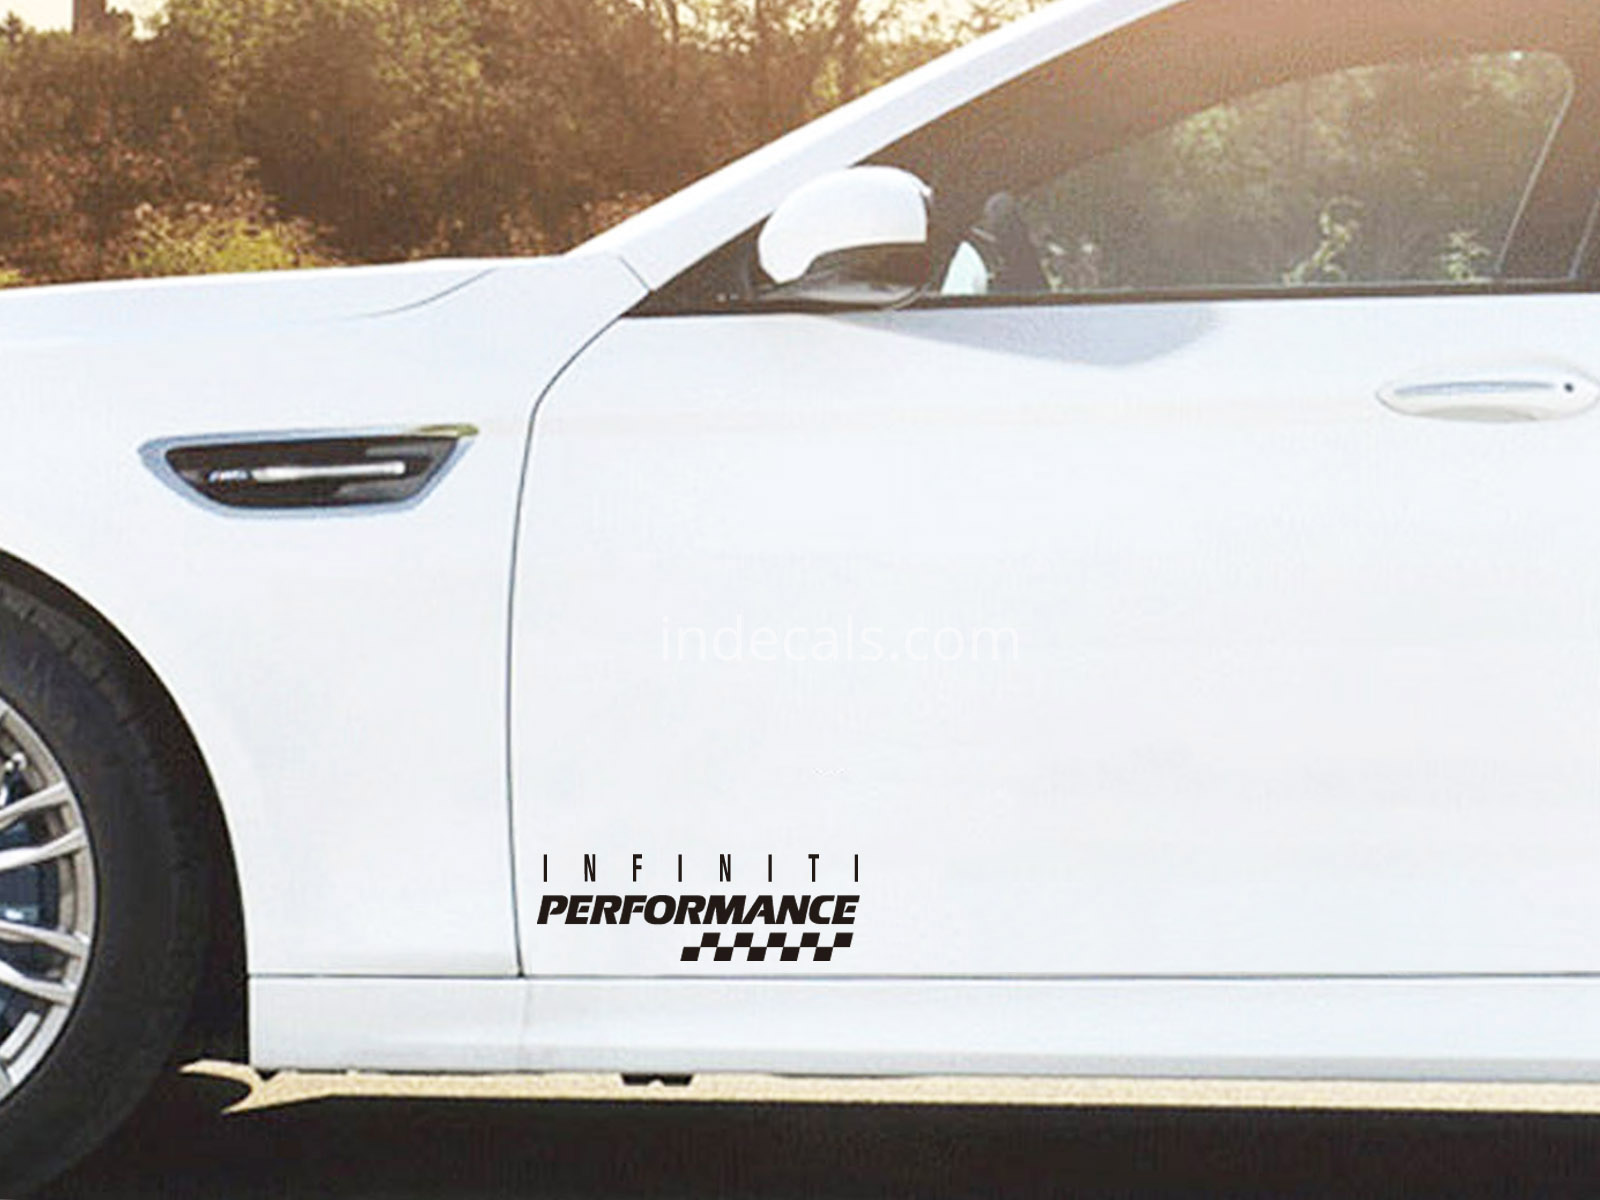 2 x Infiniti Performance Stickers for Doors - Black